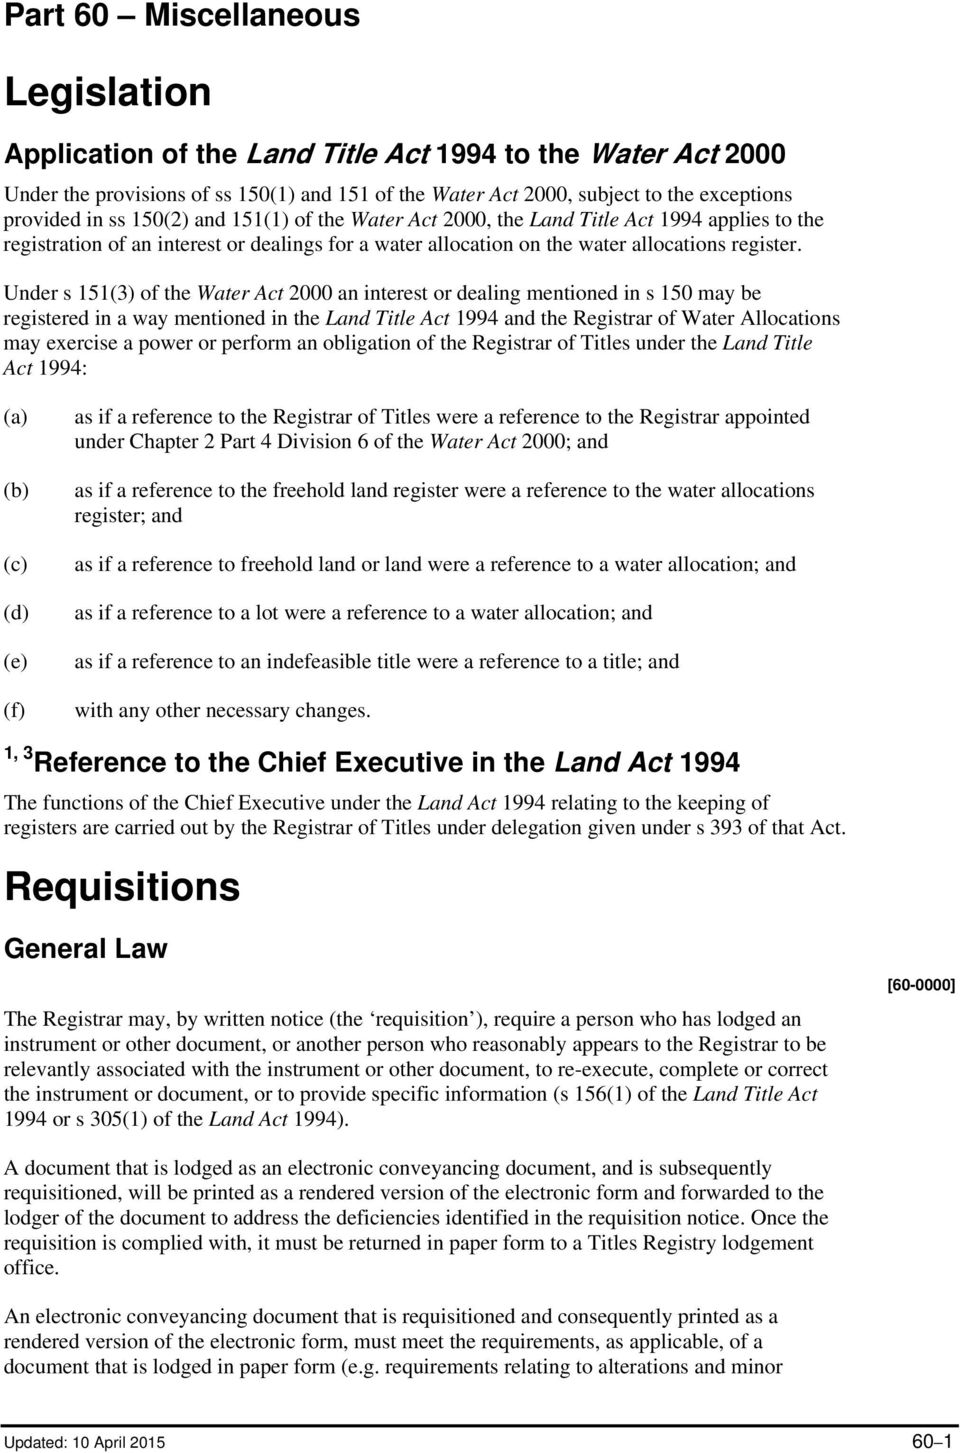 Under s 151(3) of the Water Act 2000 an interest or dealing mentioned in s 150 may be registered in a way mentioned in the Land Title Act 1994 and the Registrar of Water Allocations may exercise a